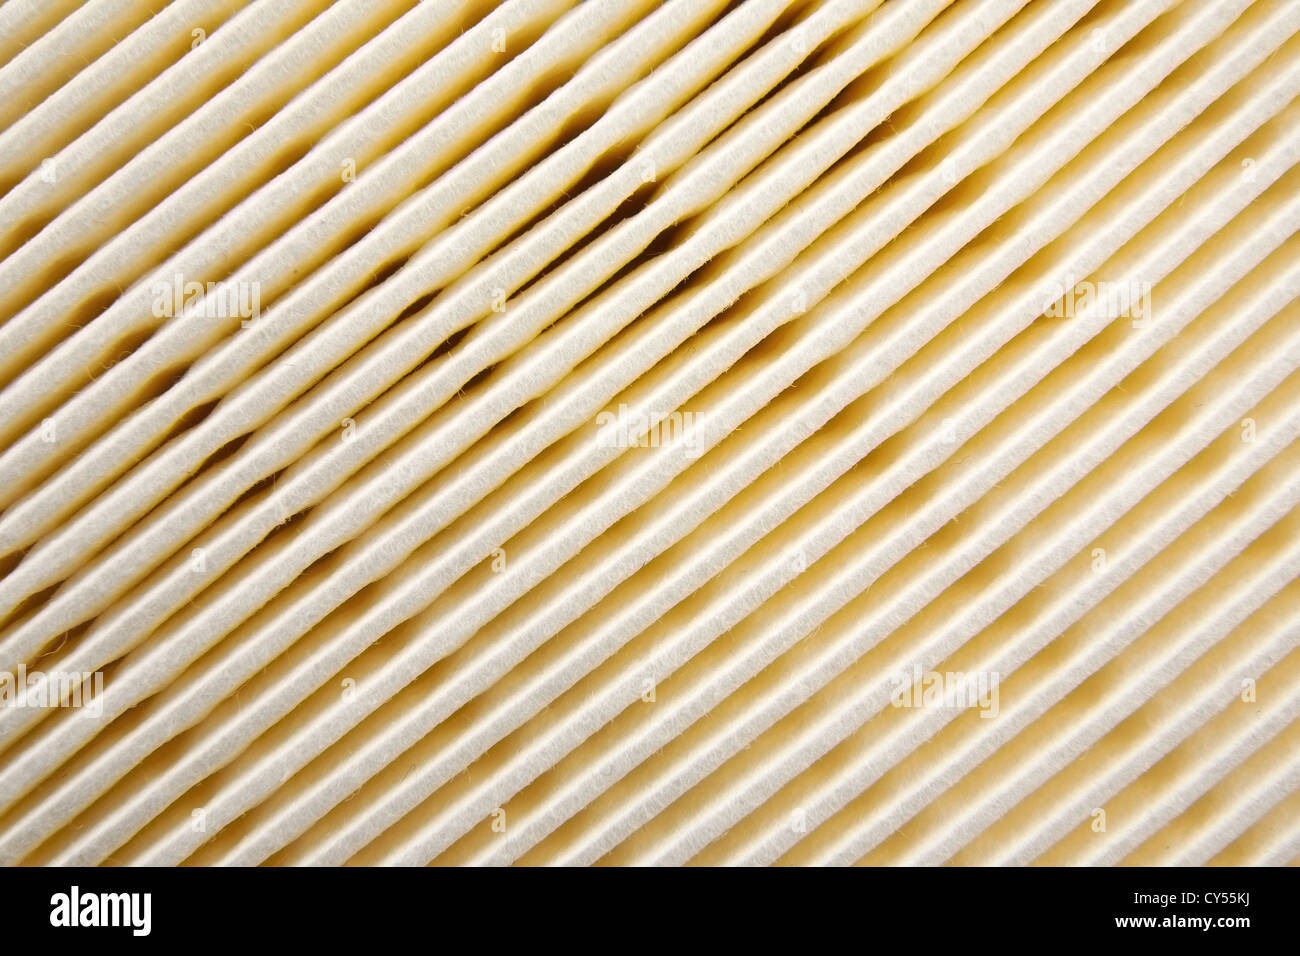 air filter closely - Stock Image